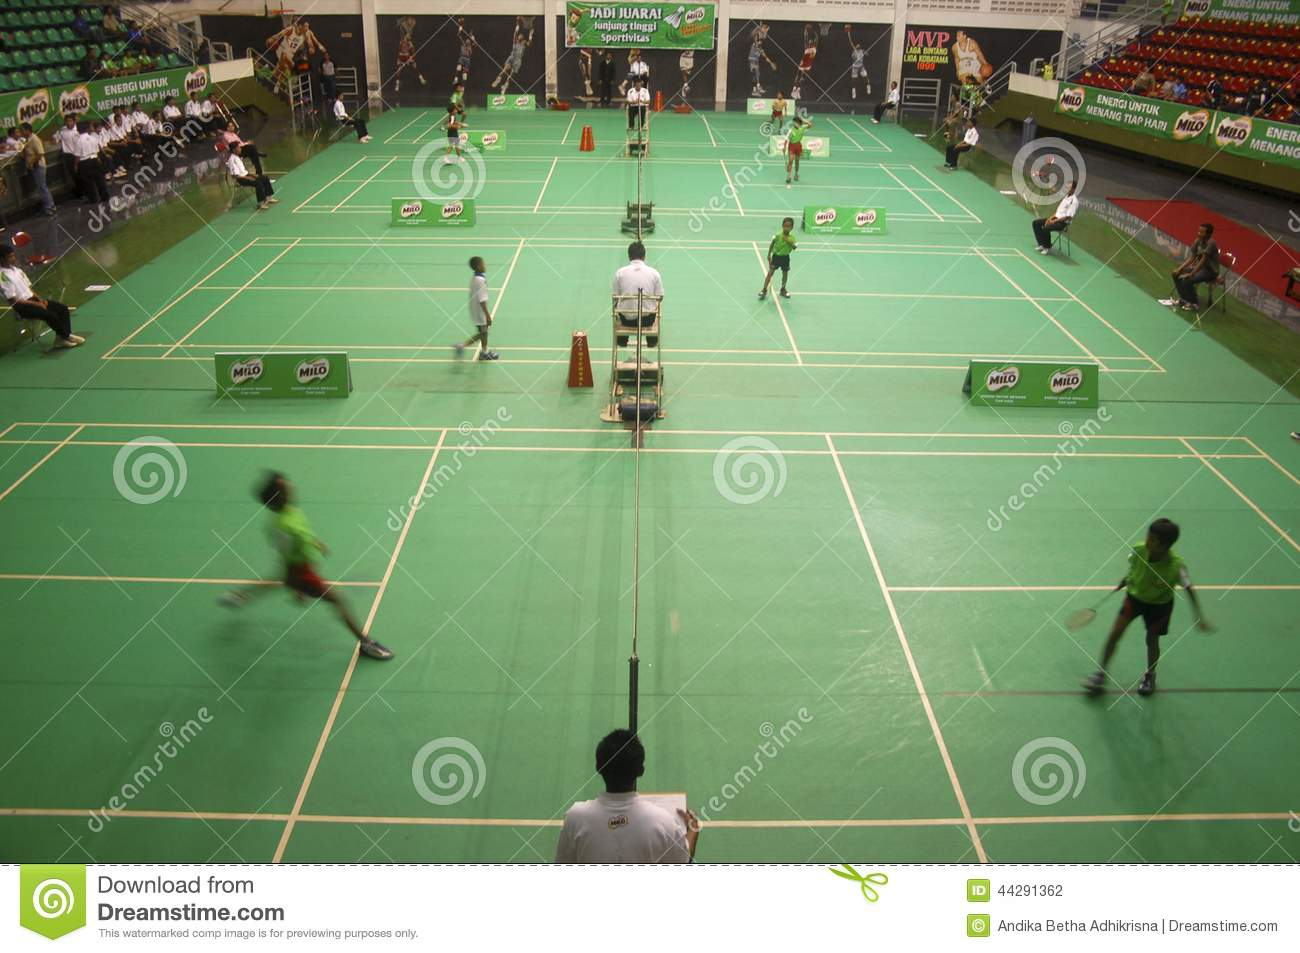 SPORTS IN INDONESIA